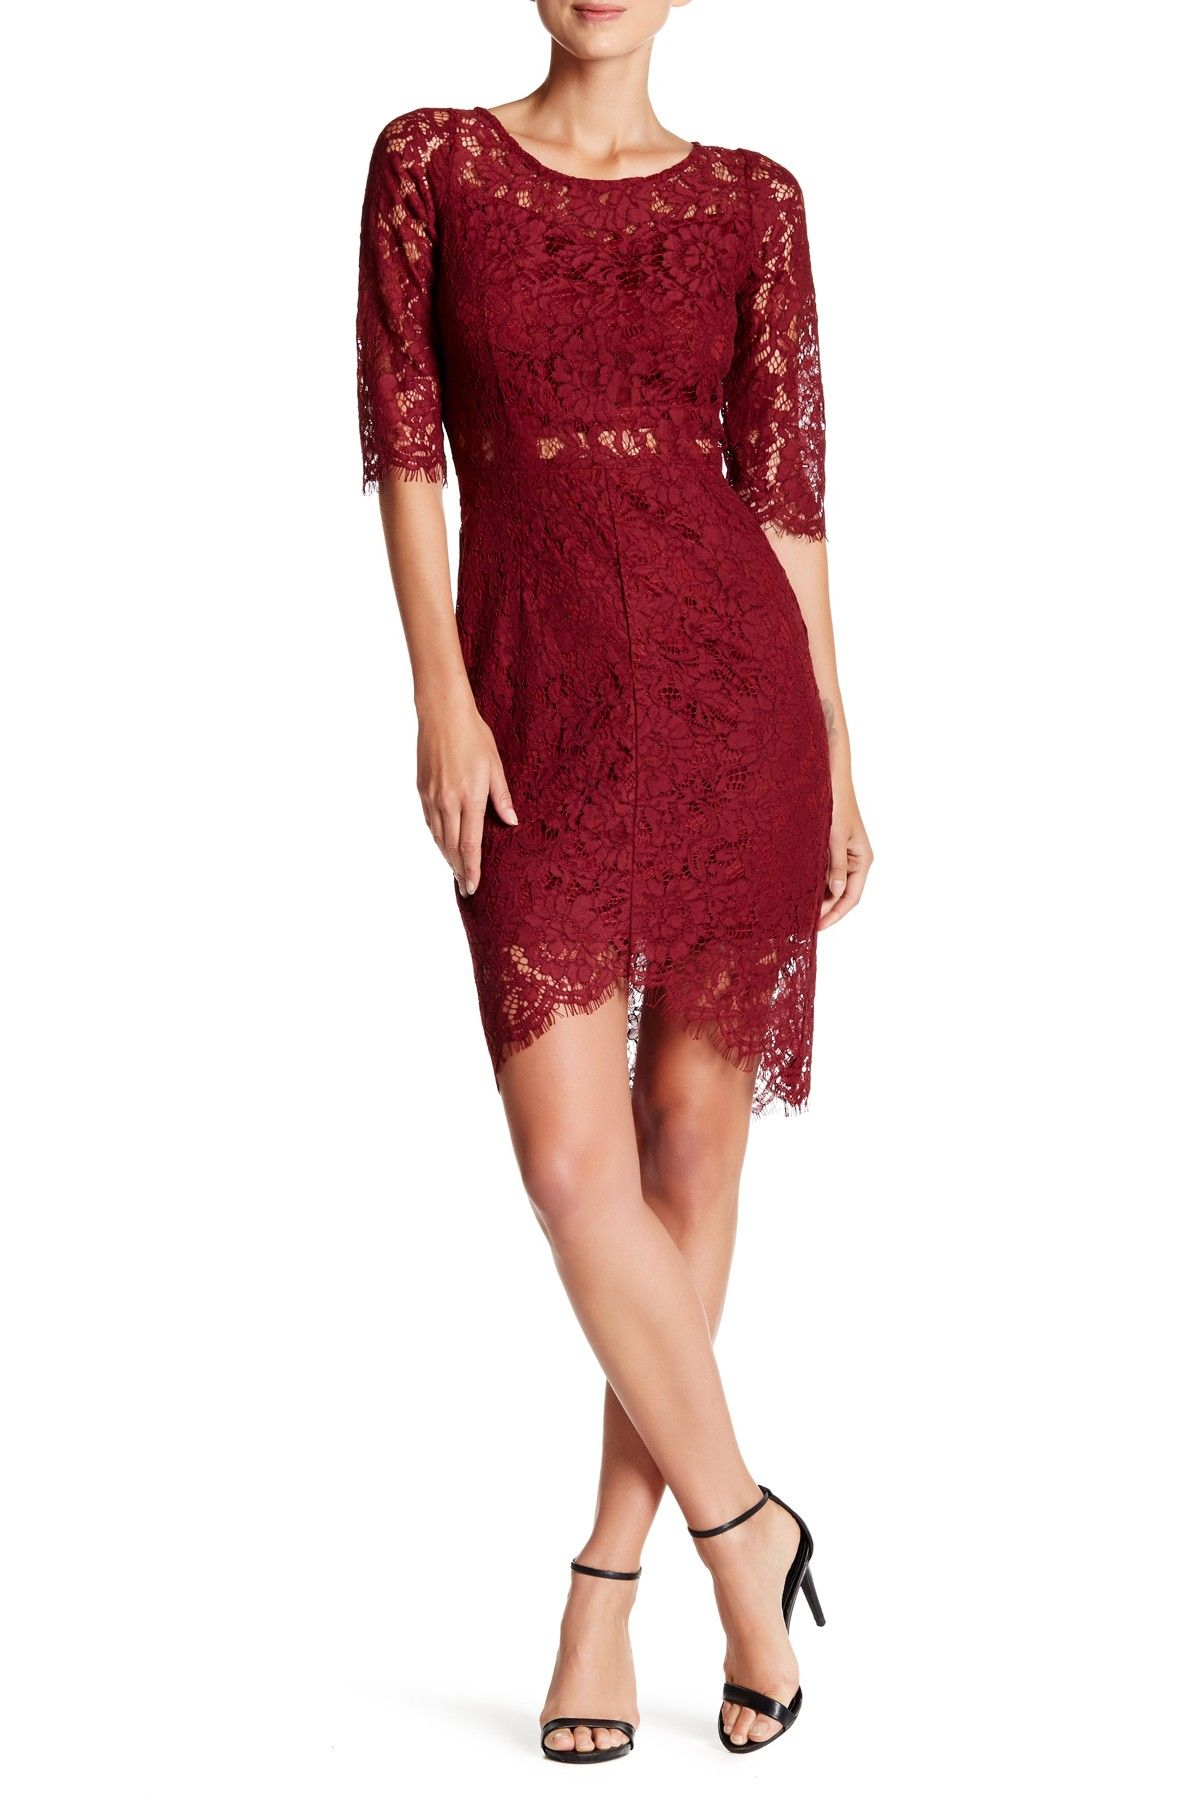 Soieblu | Ballet Lace Sheath Dress | Lace sheath dress